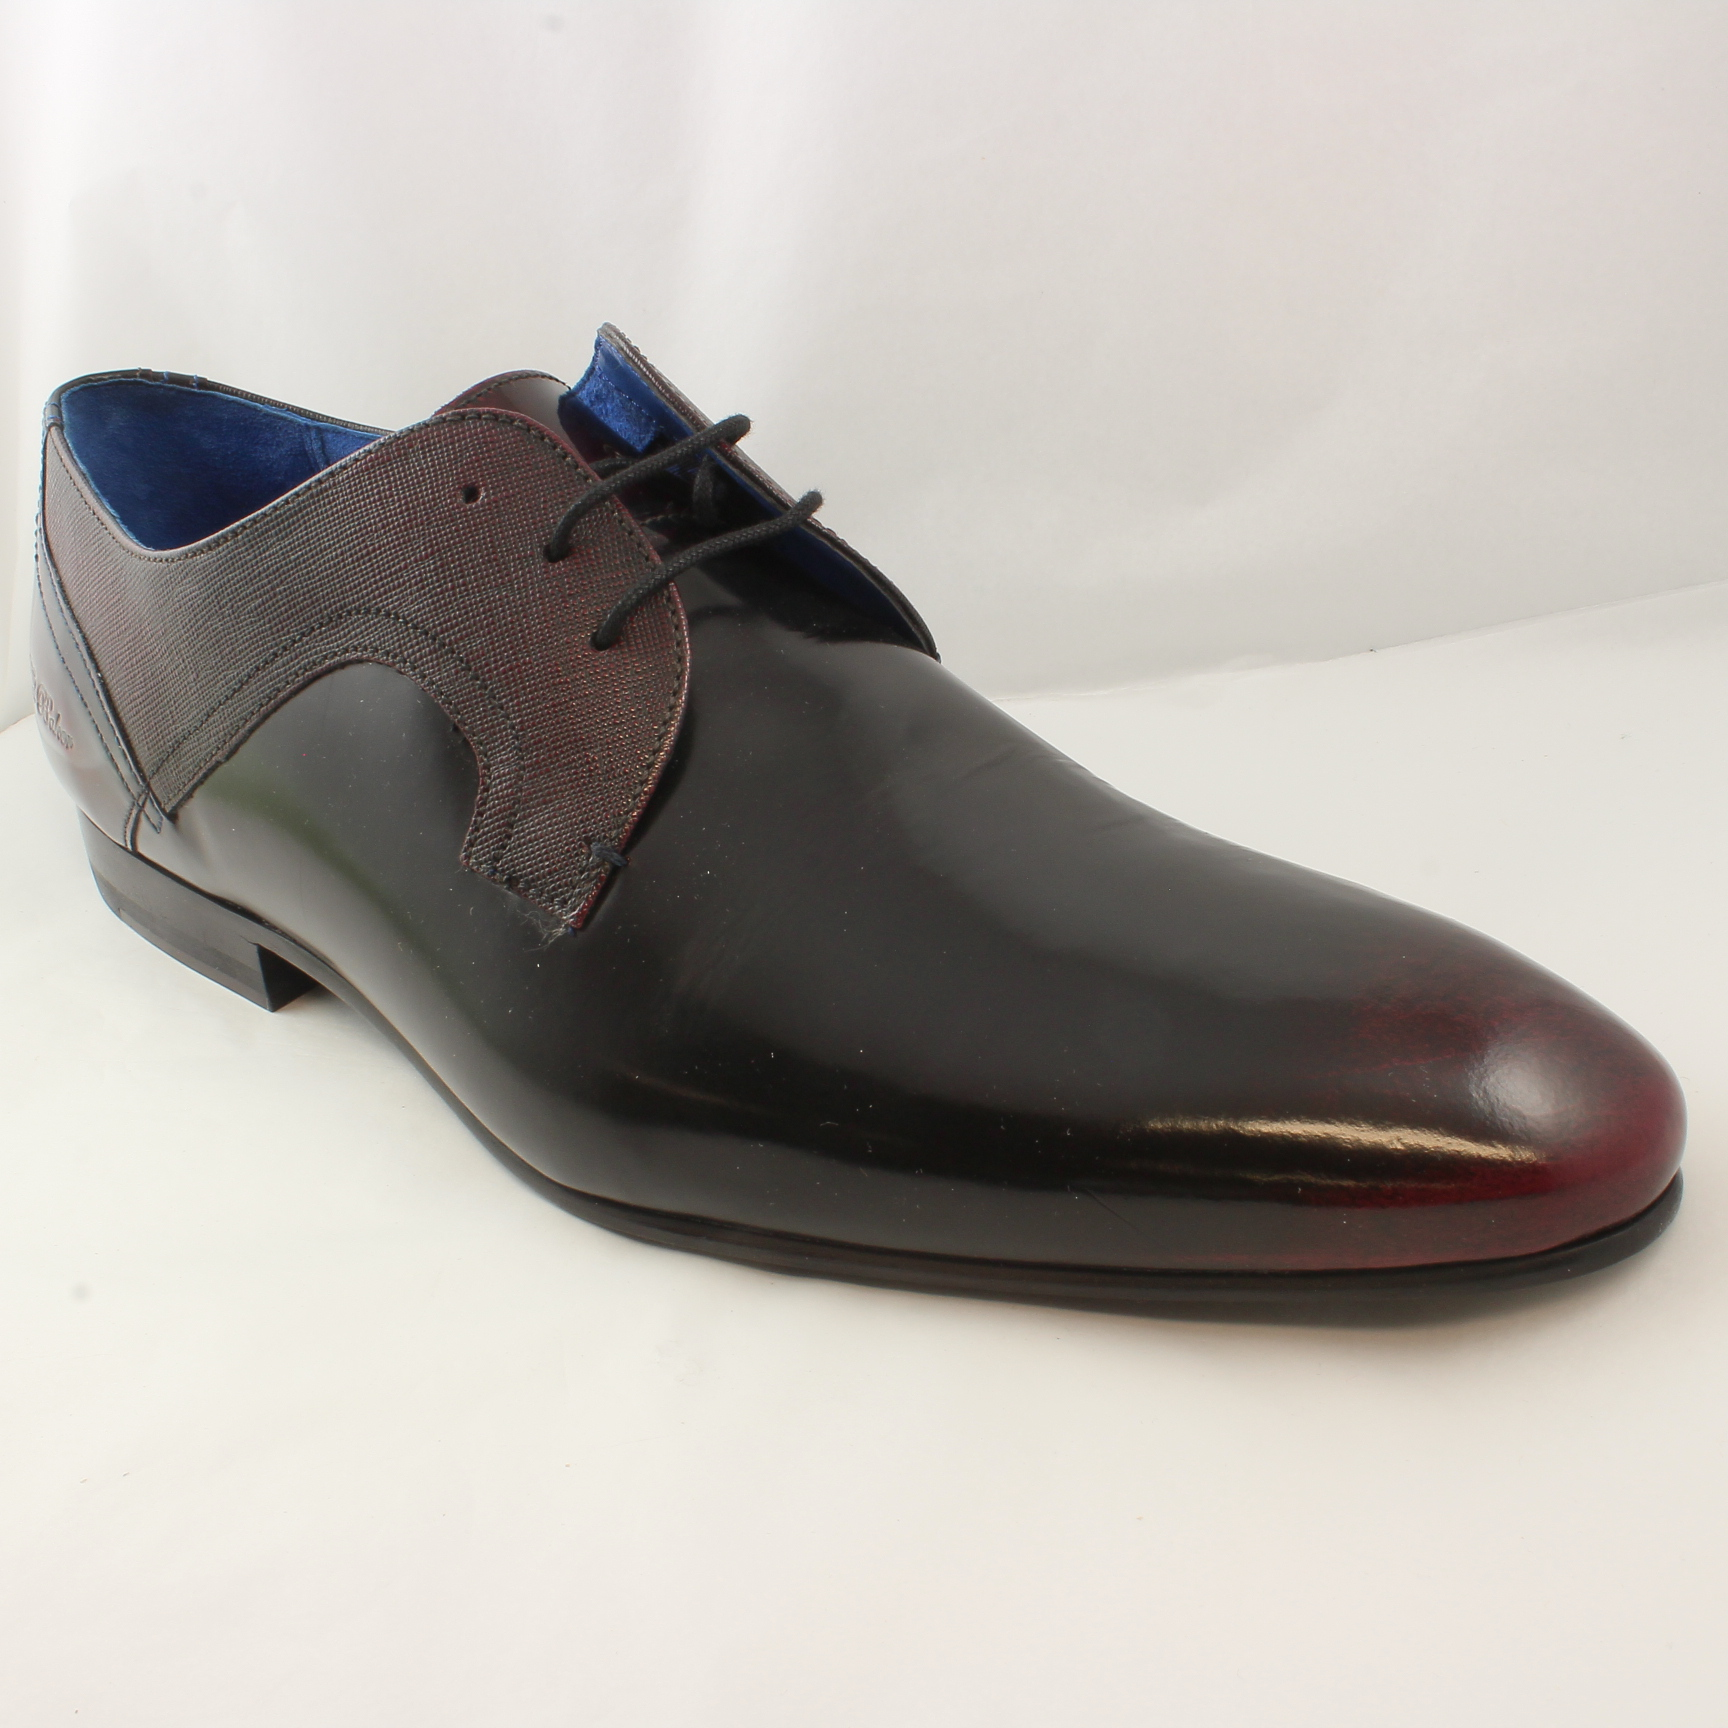 Sentinel Mens Ted Baker Cherry Leather Lace Up Formal Shoes Uk Size 11 *Ex  Display